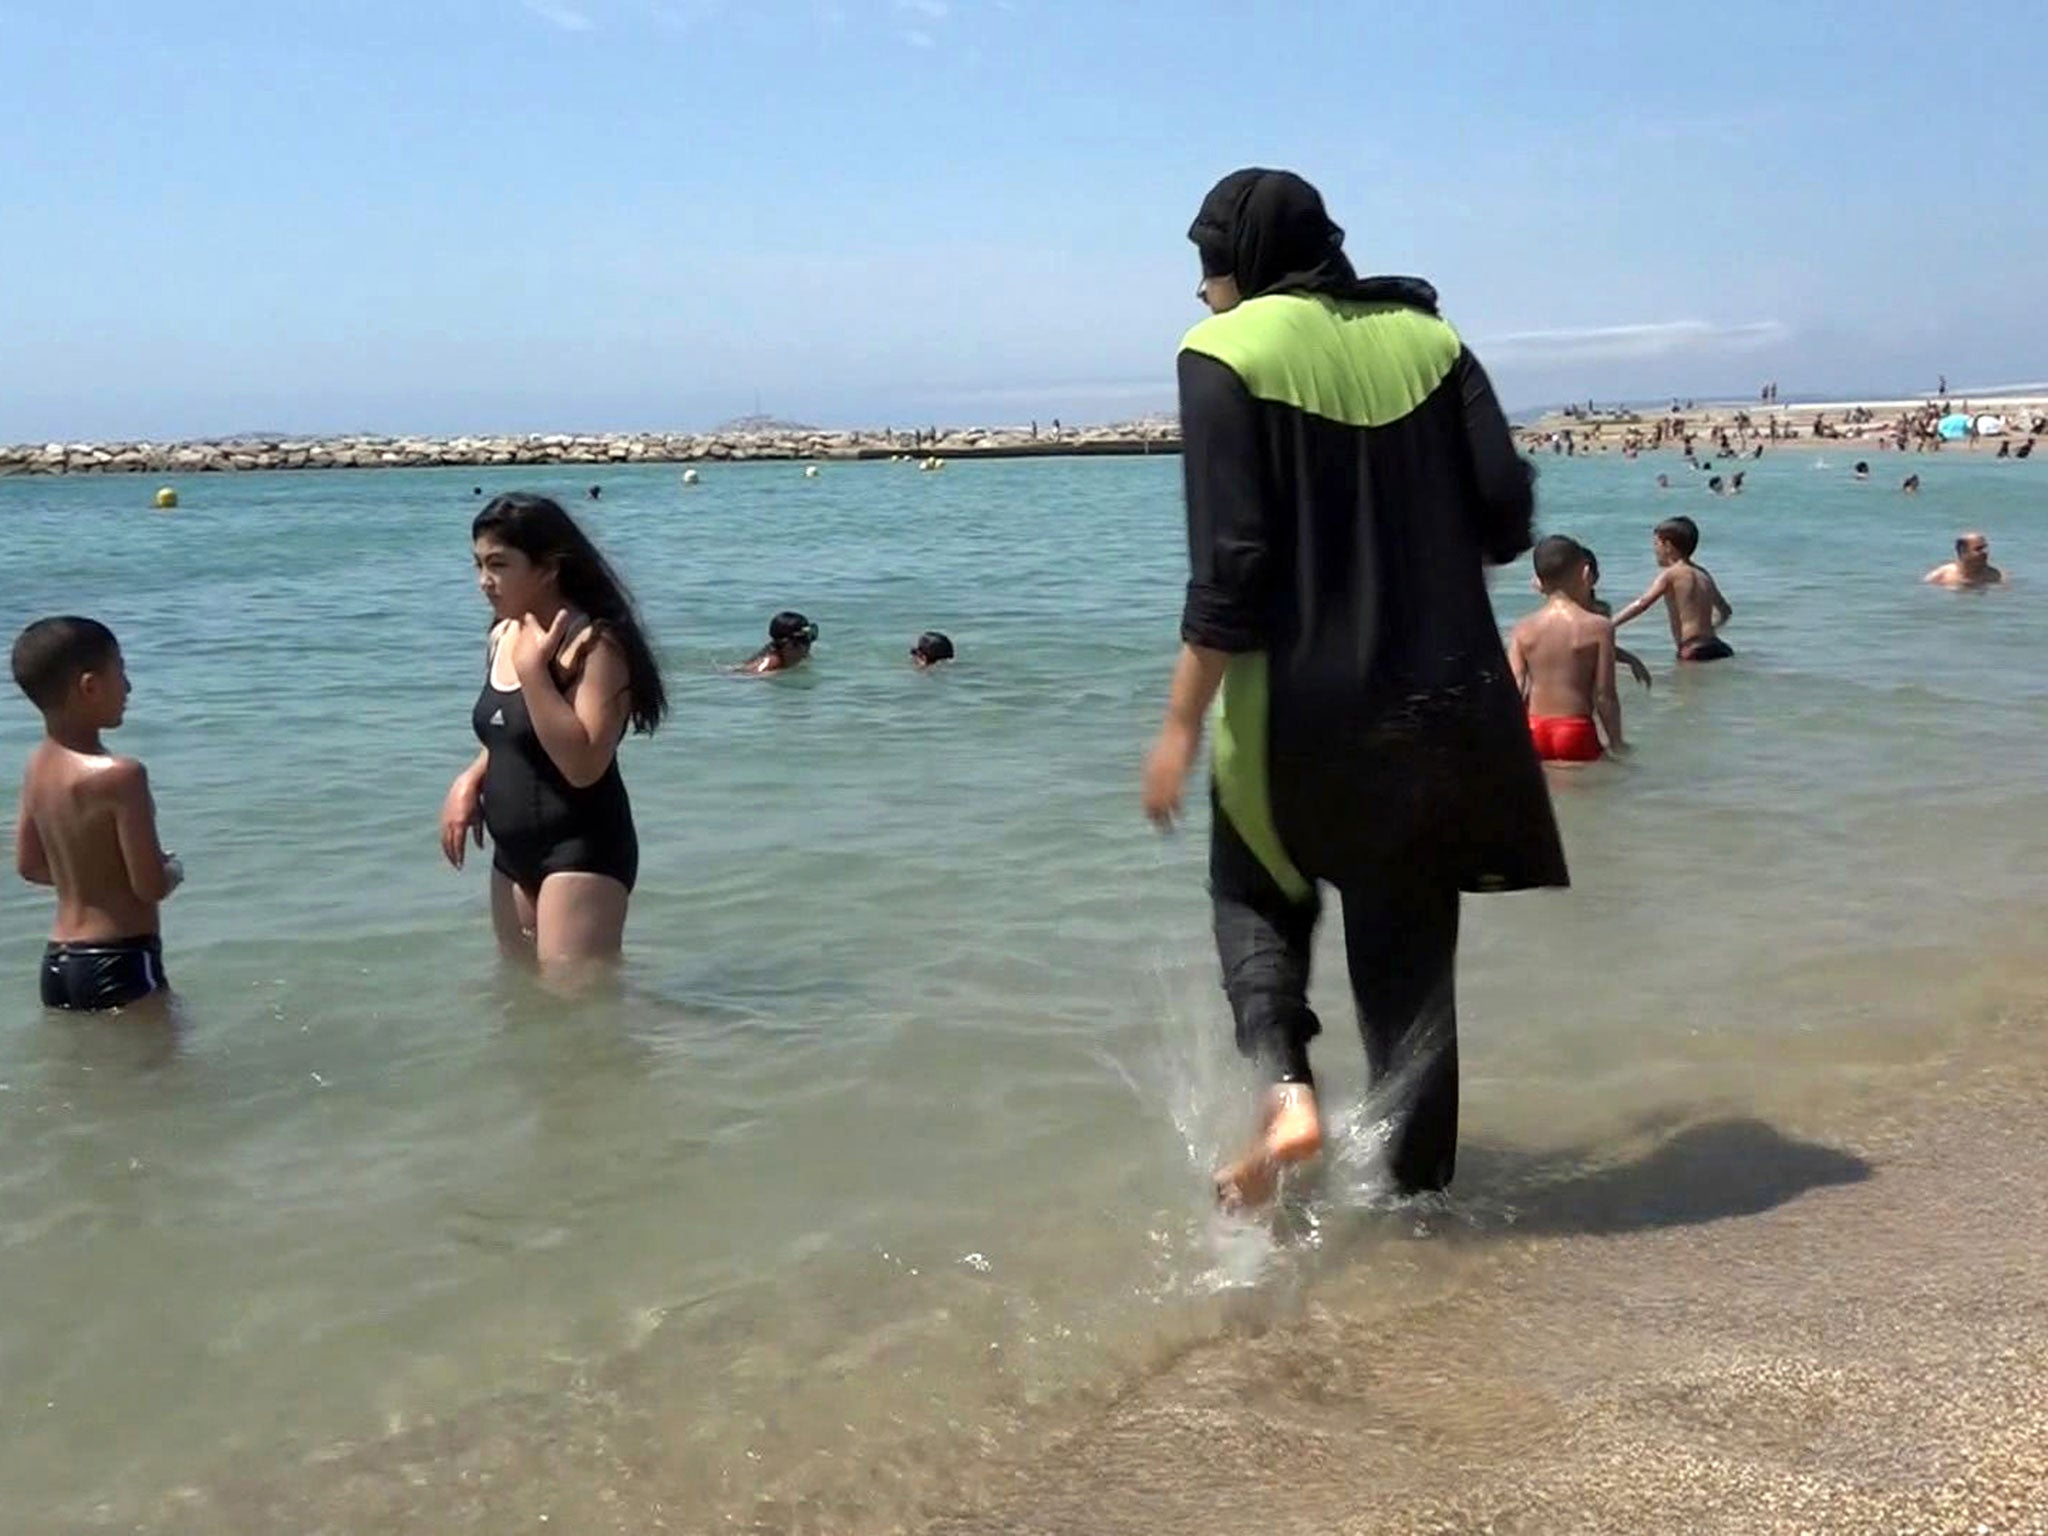 In Nice and several provinces of France banned swimming in hijab